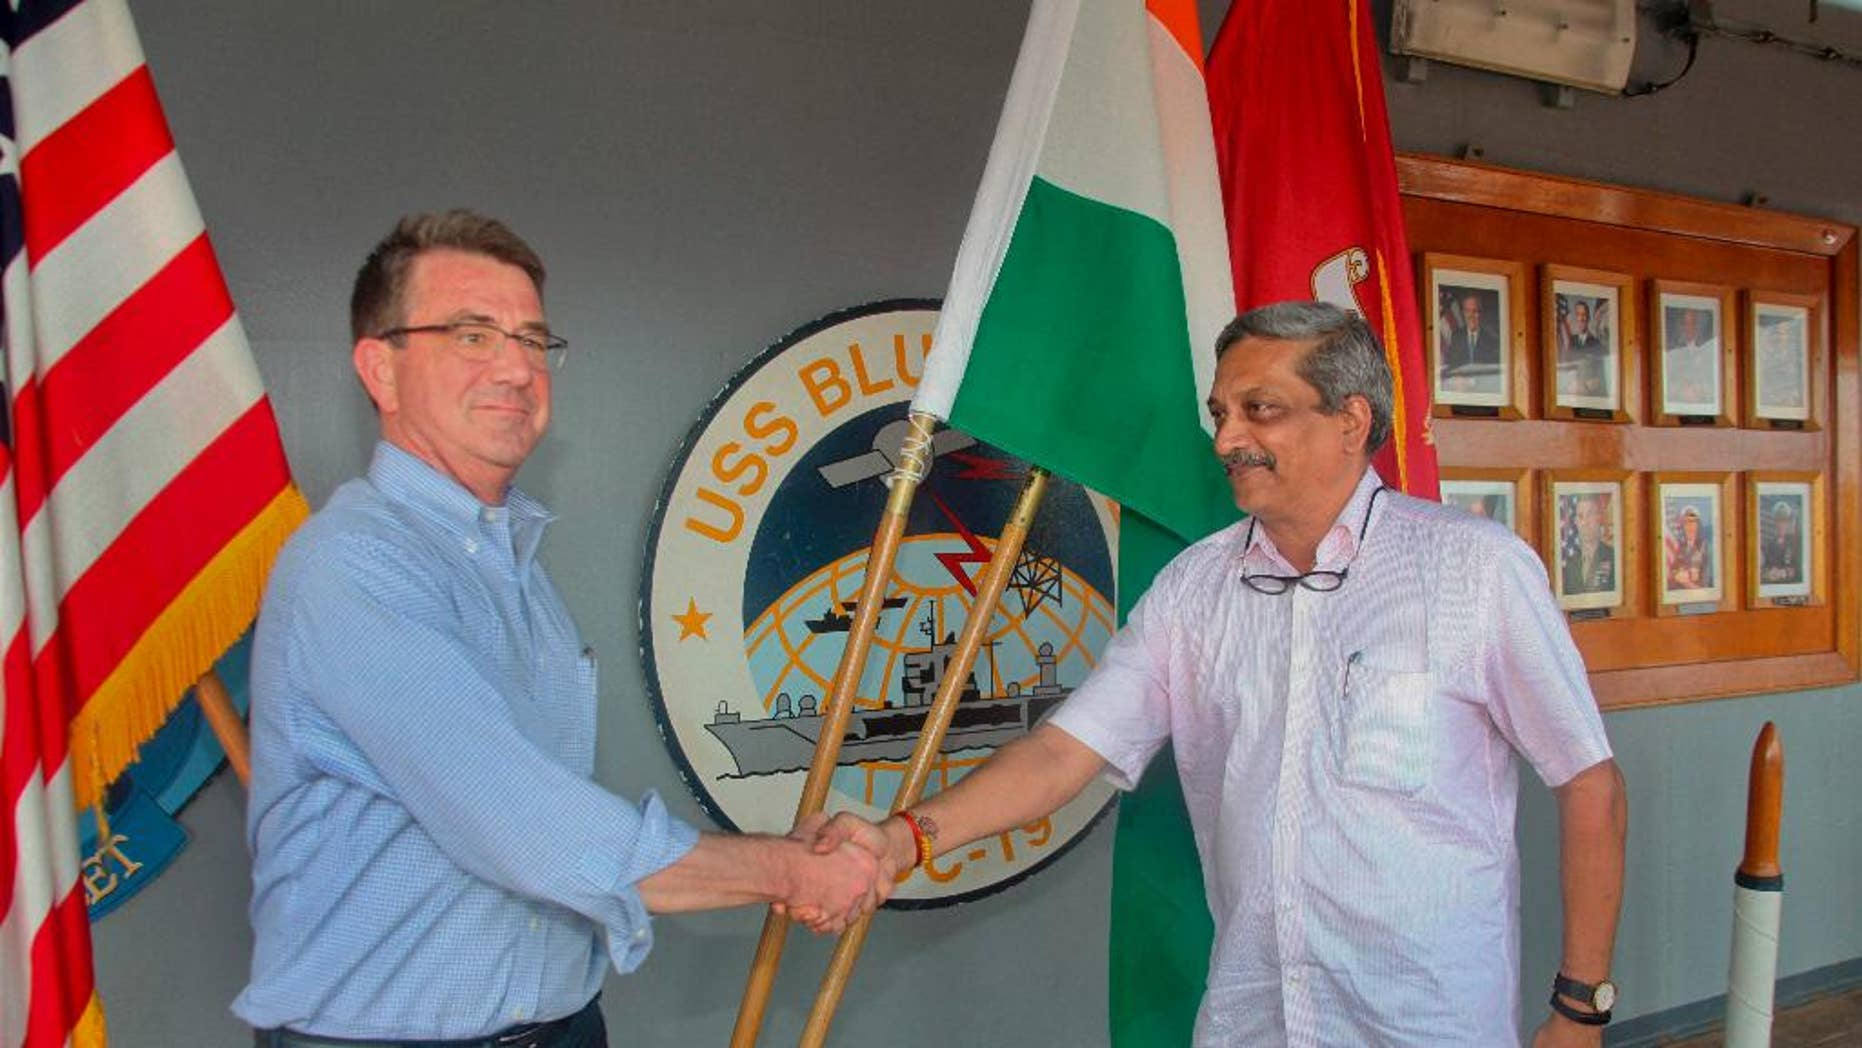 Indian Defence Minister Manohar Parrikar, right, greets US Defense Secretary Ashton Carter during his visit to the Indian Naval Base in Karwar, Karnataka state, India,  Monday, April 11, 2016.(Press Trust of India via AP)INDIA OUT